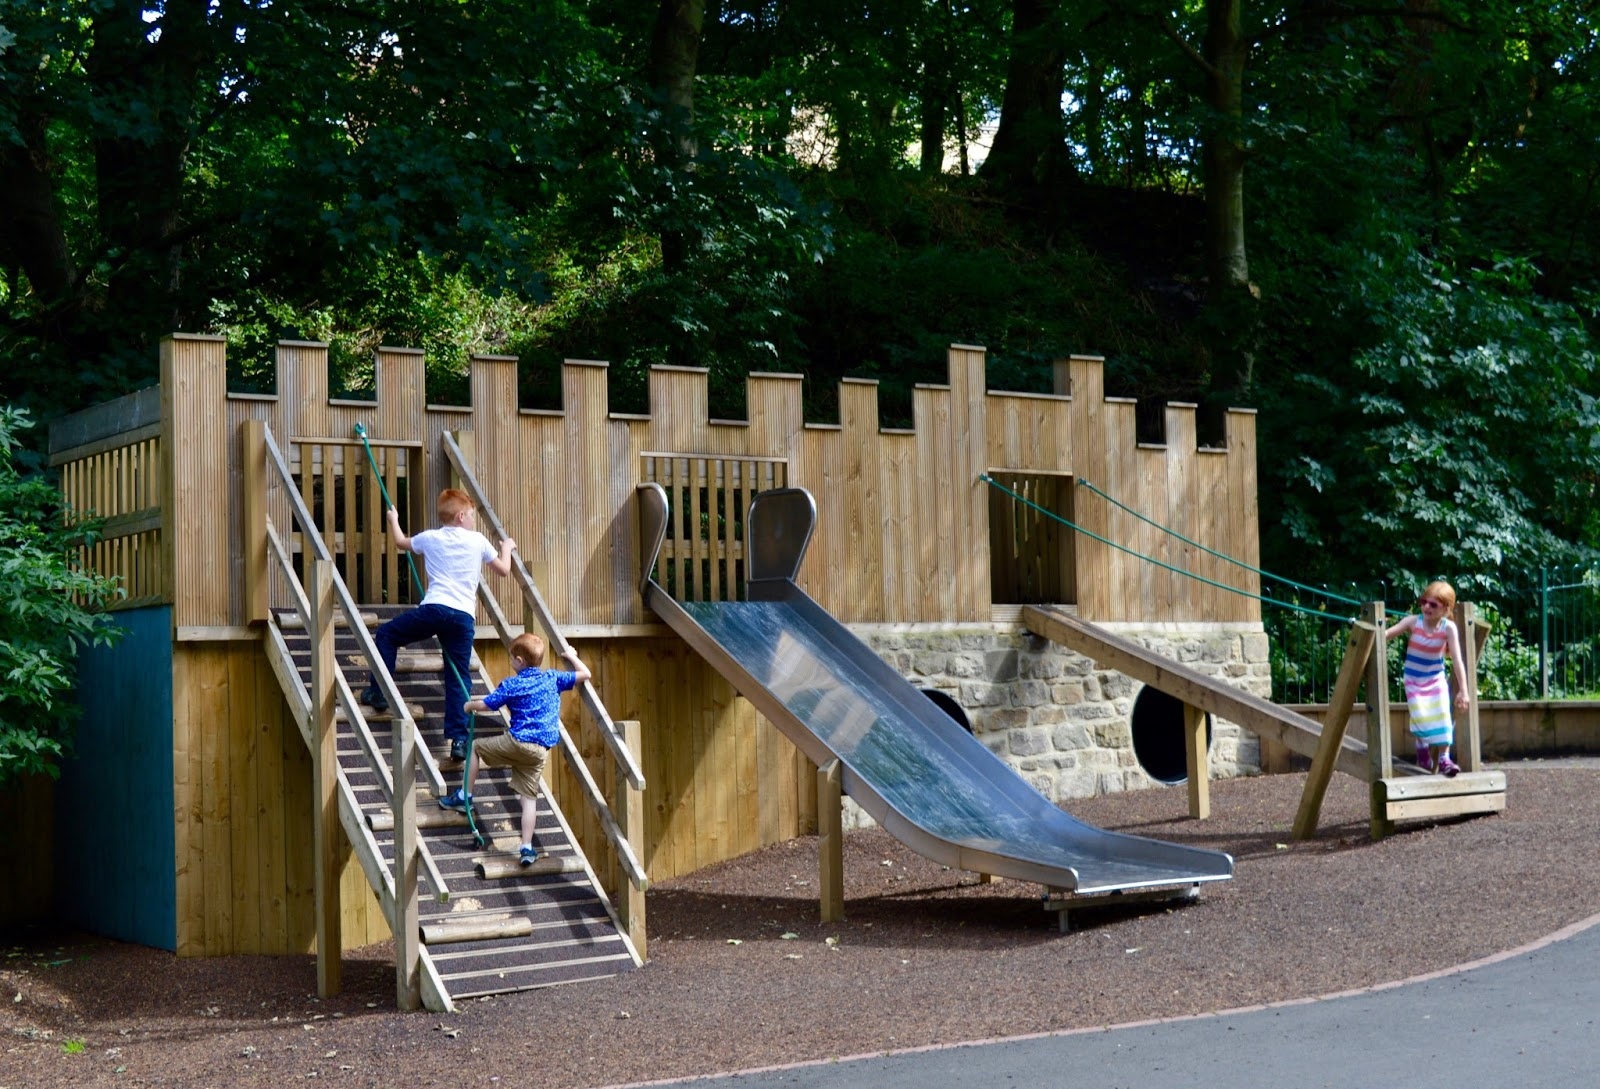 Cafe 32 | Linskill Centre, North Shields - A review - Northumberland park play area